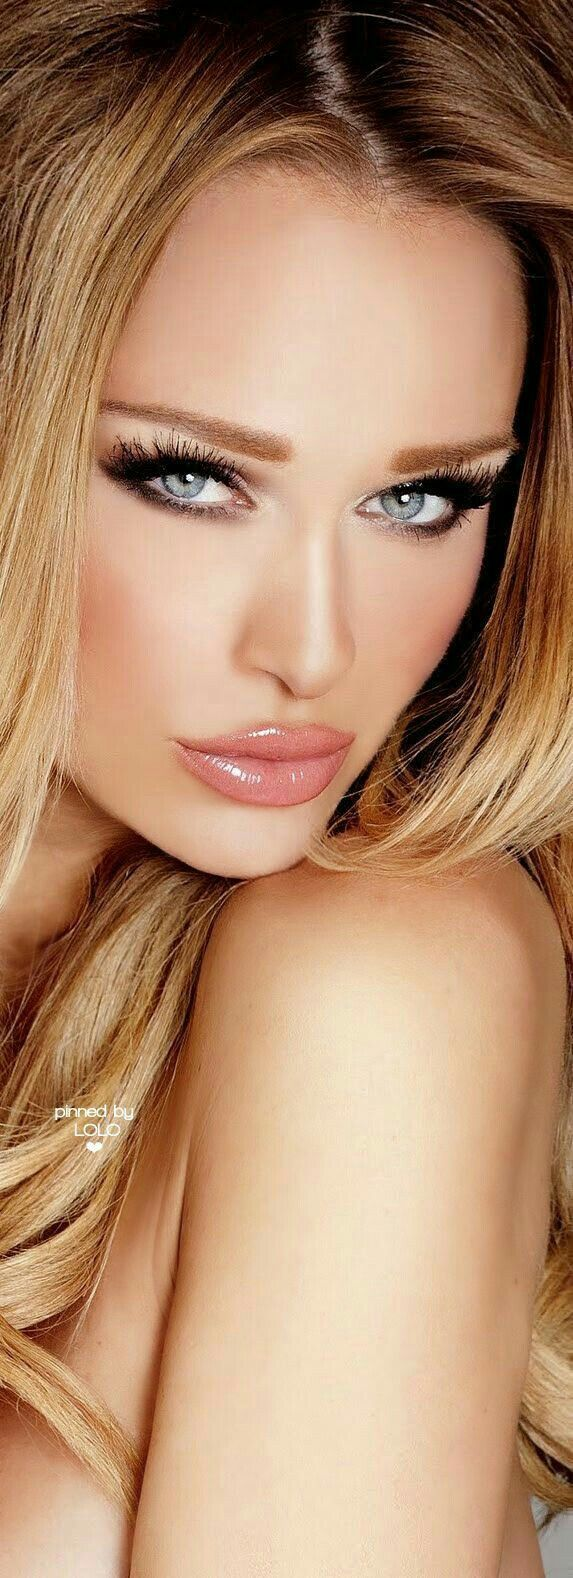 Ivy Levan Nude Classy guess who #storelatina #productos importados #products